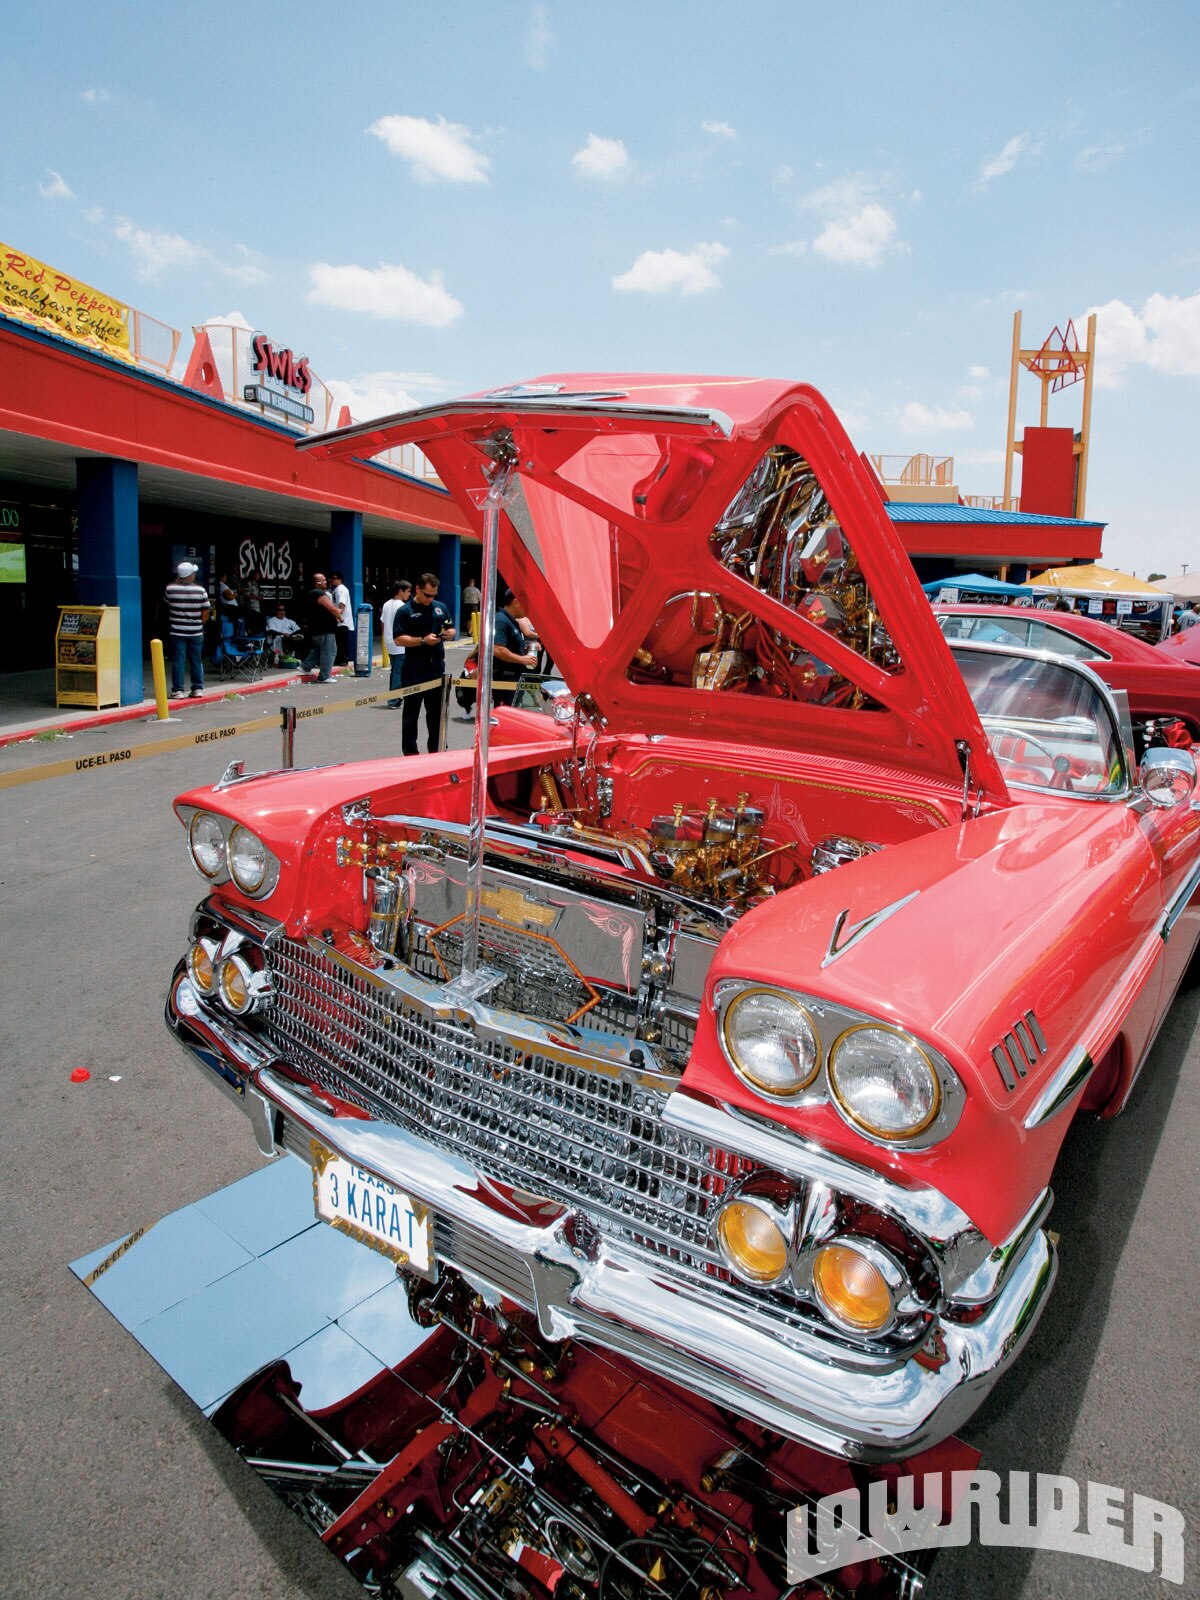 Faustino's '58 was on display for the community.